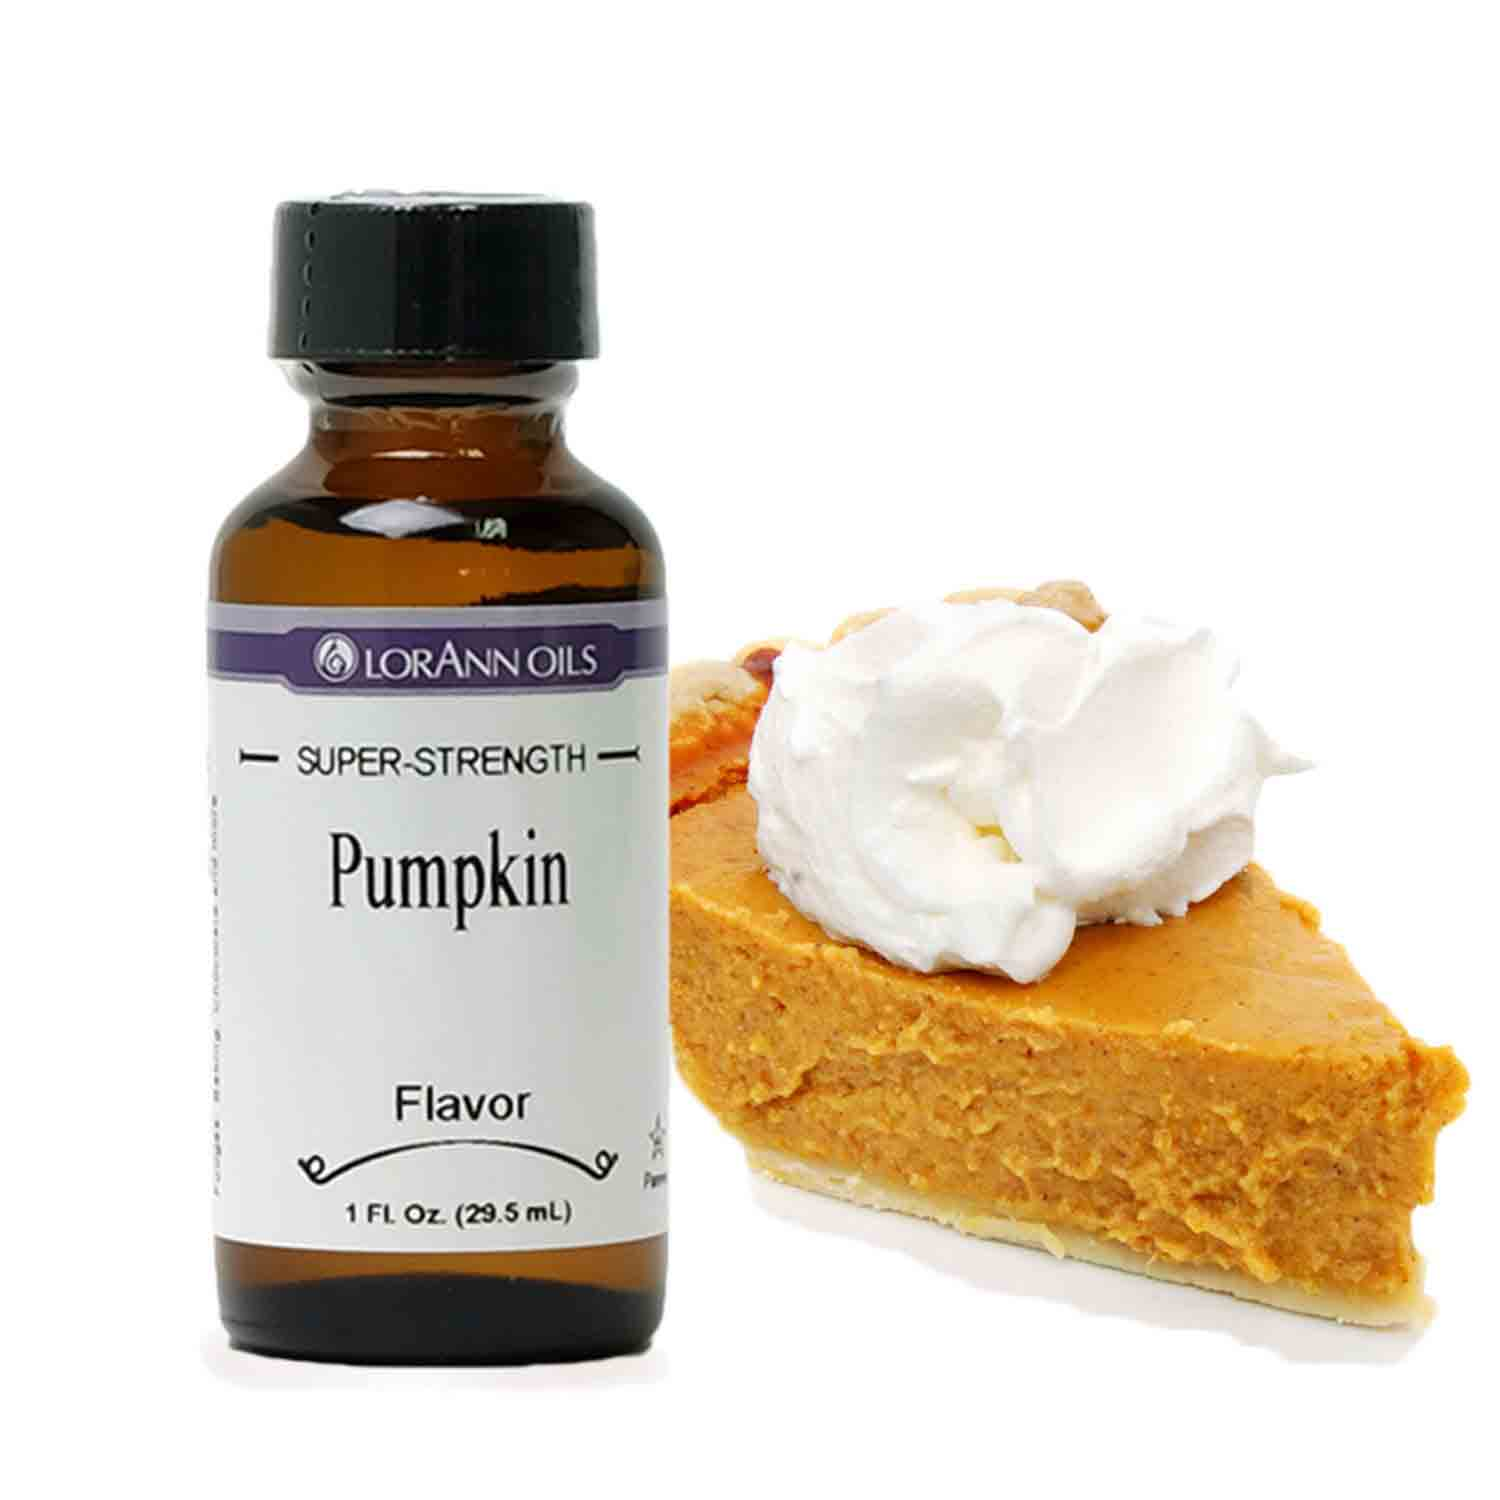 Pumpkin Super-Strength Flavor